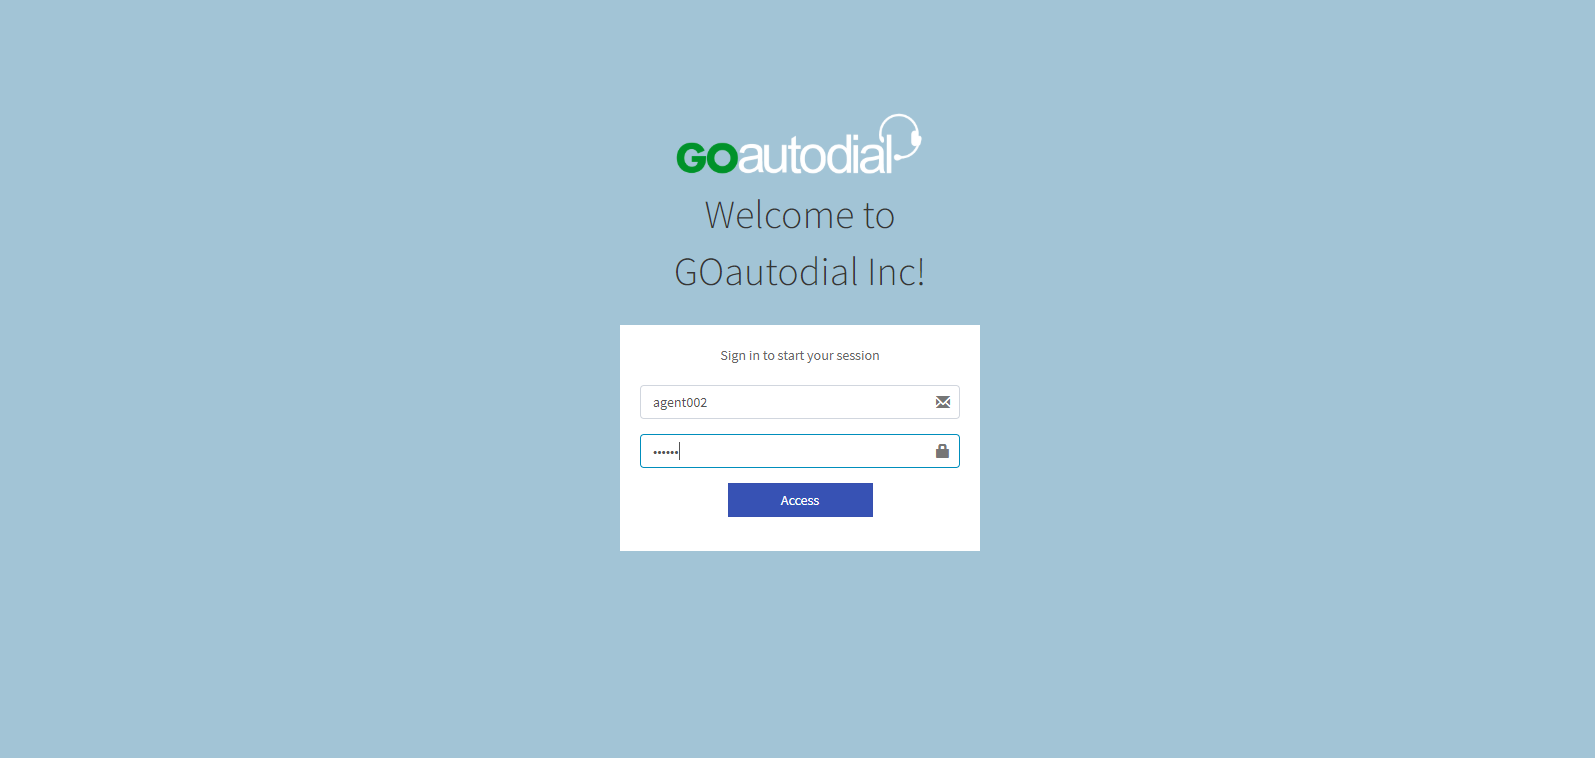 Goautodial Getting Started Guidev4 - GOautodial Omni-channel Contact